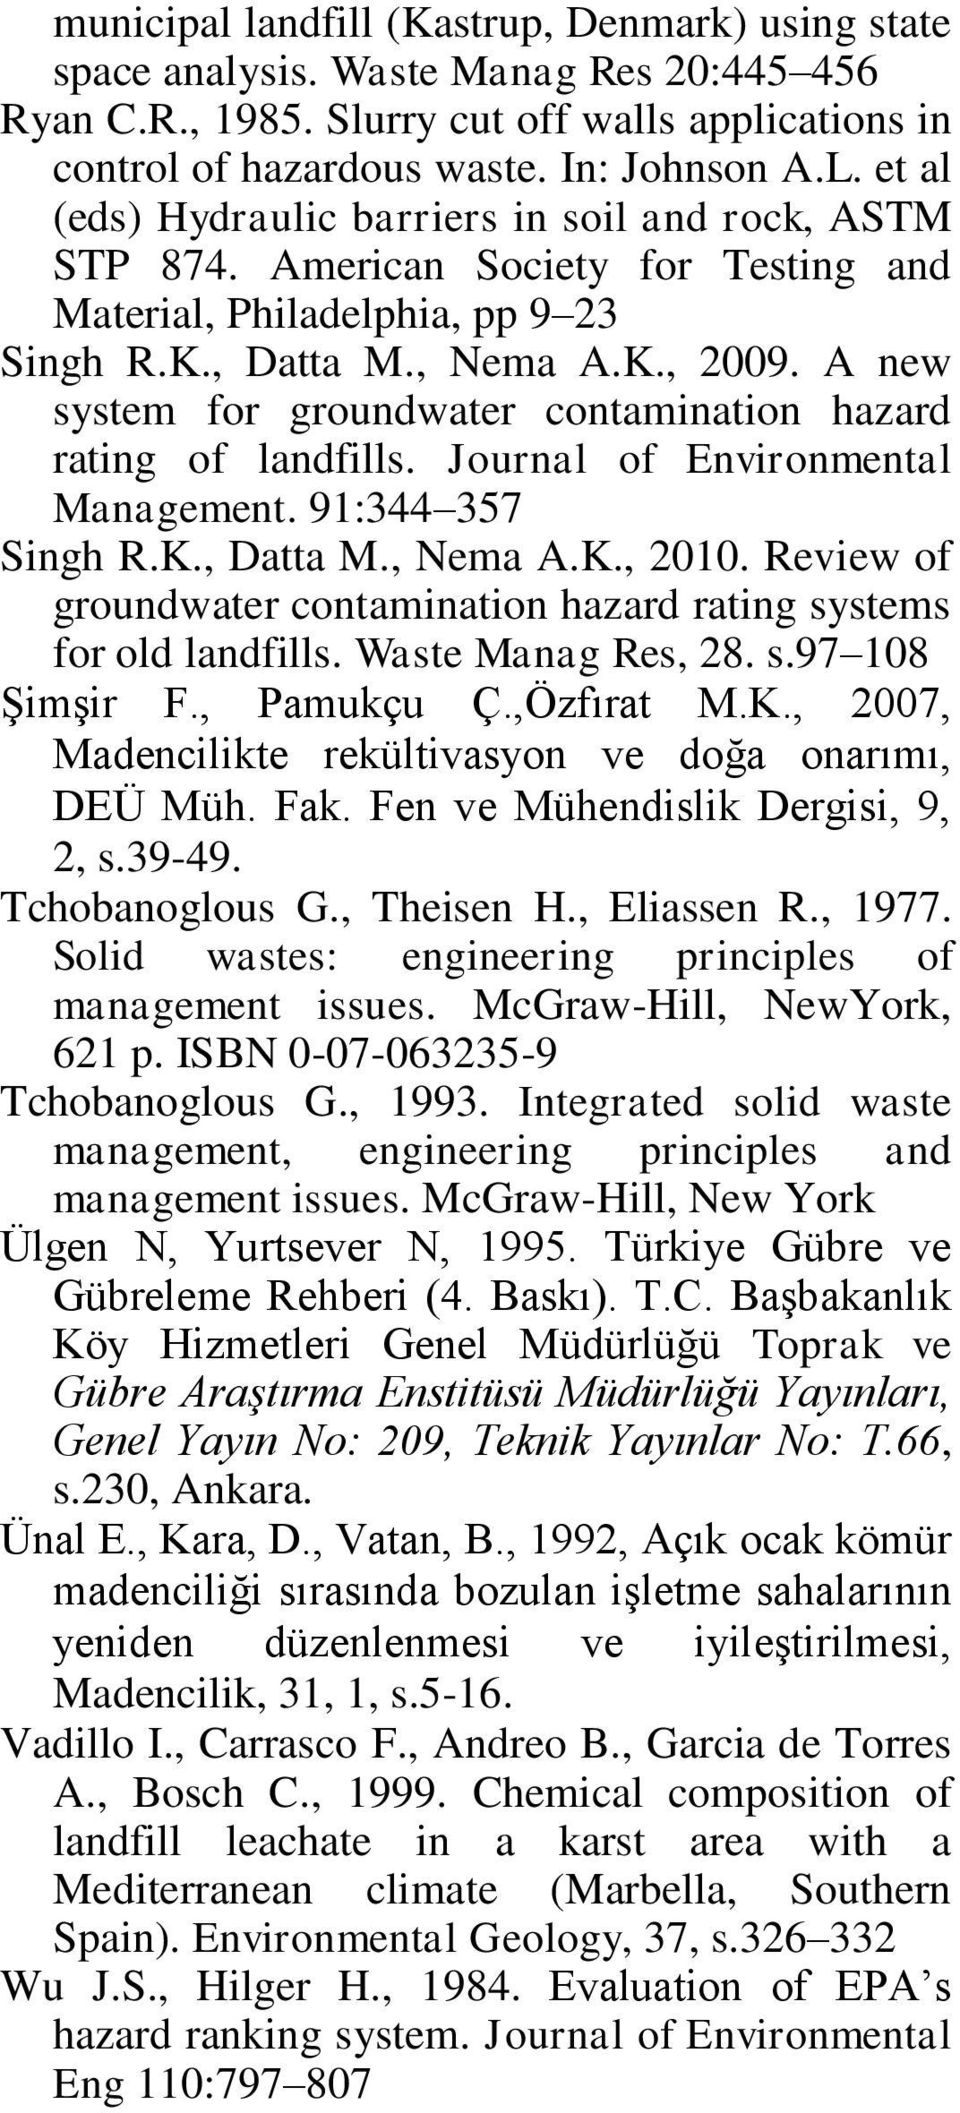 A new system for groundwater contamination hazard rating of landfills. Journal of Environmental Management. 91:344 357 Singh R.K., Datta M., Nema A.K., 2010.